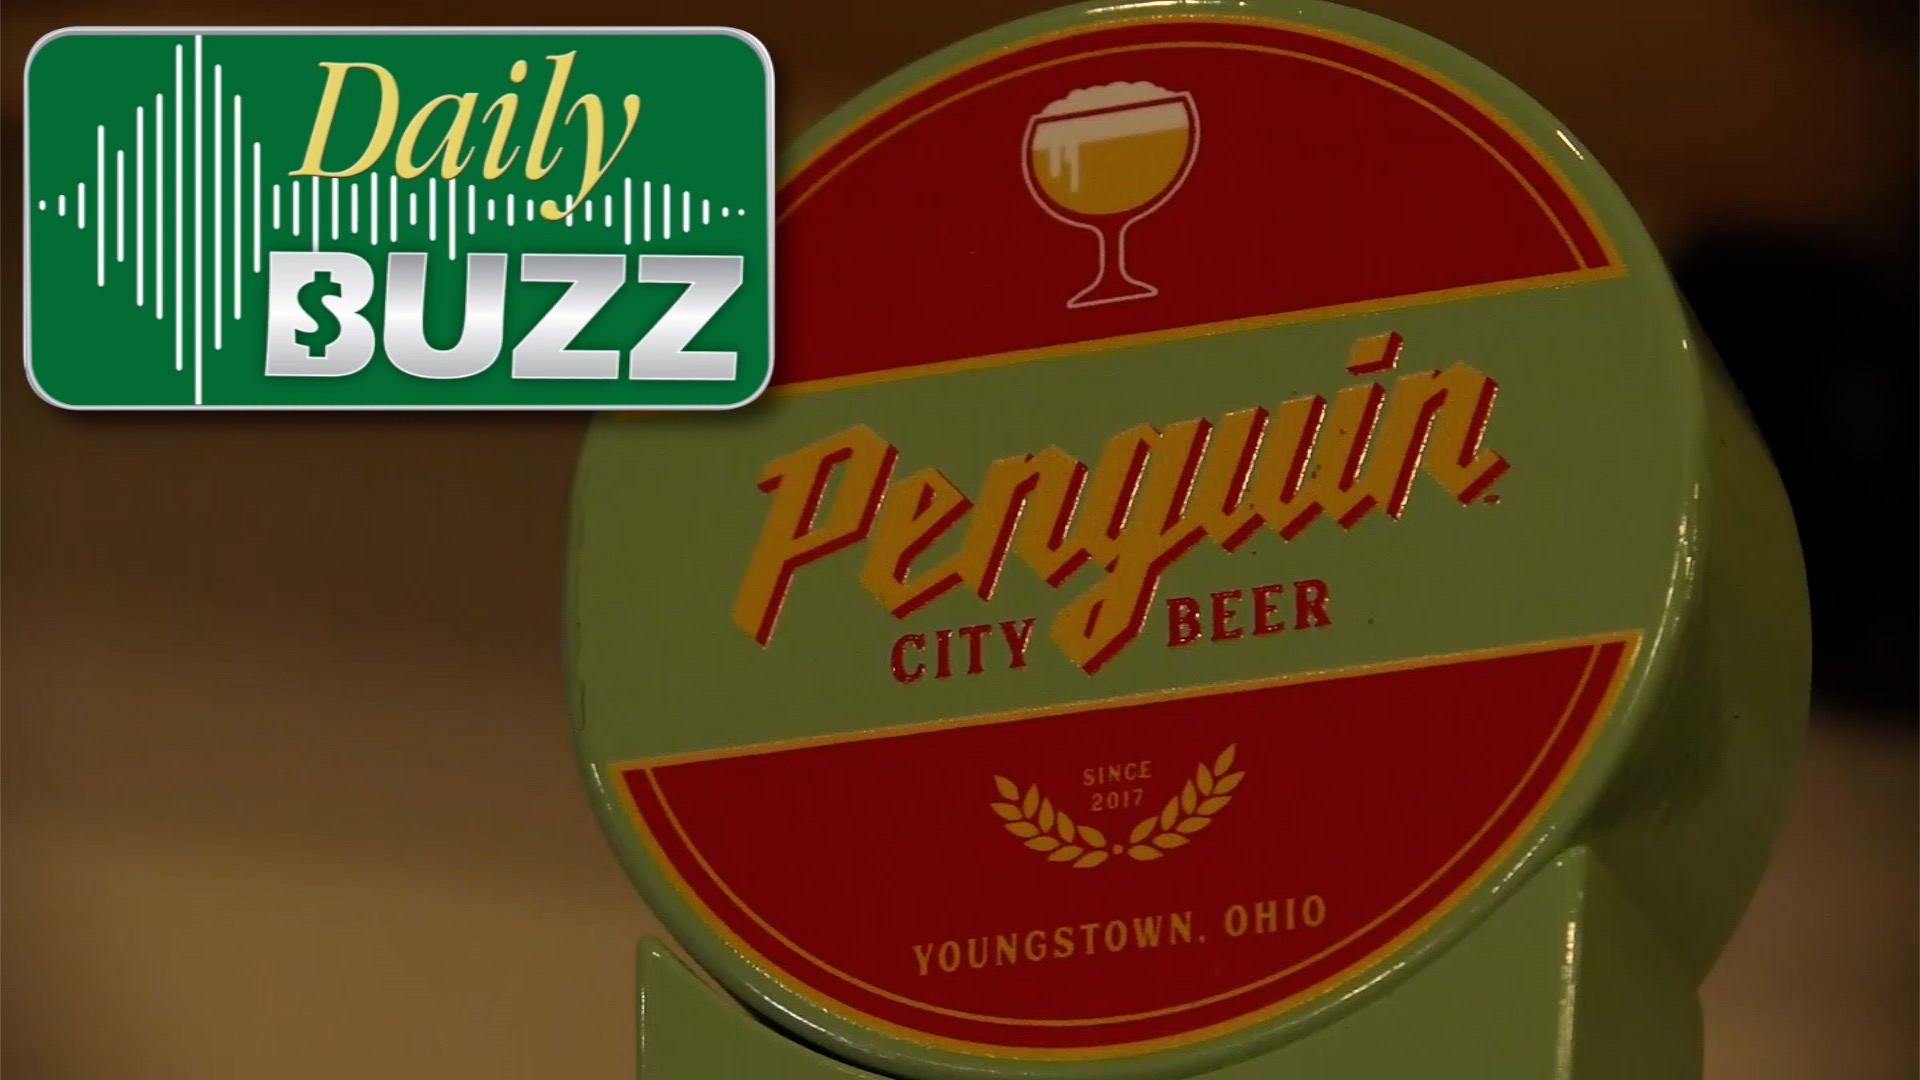 A Beer for Youngstown